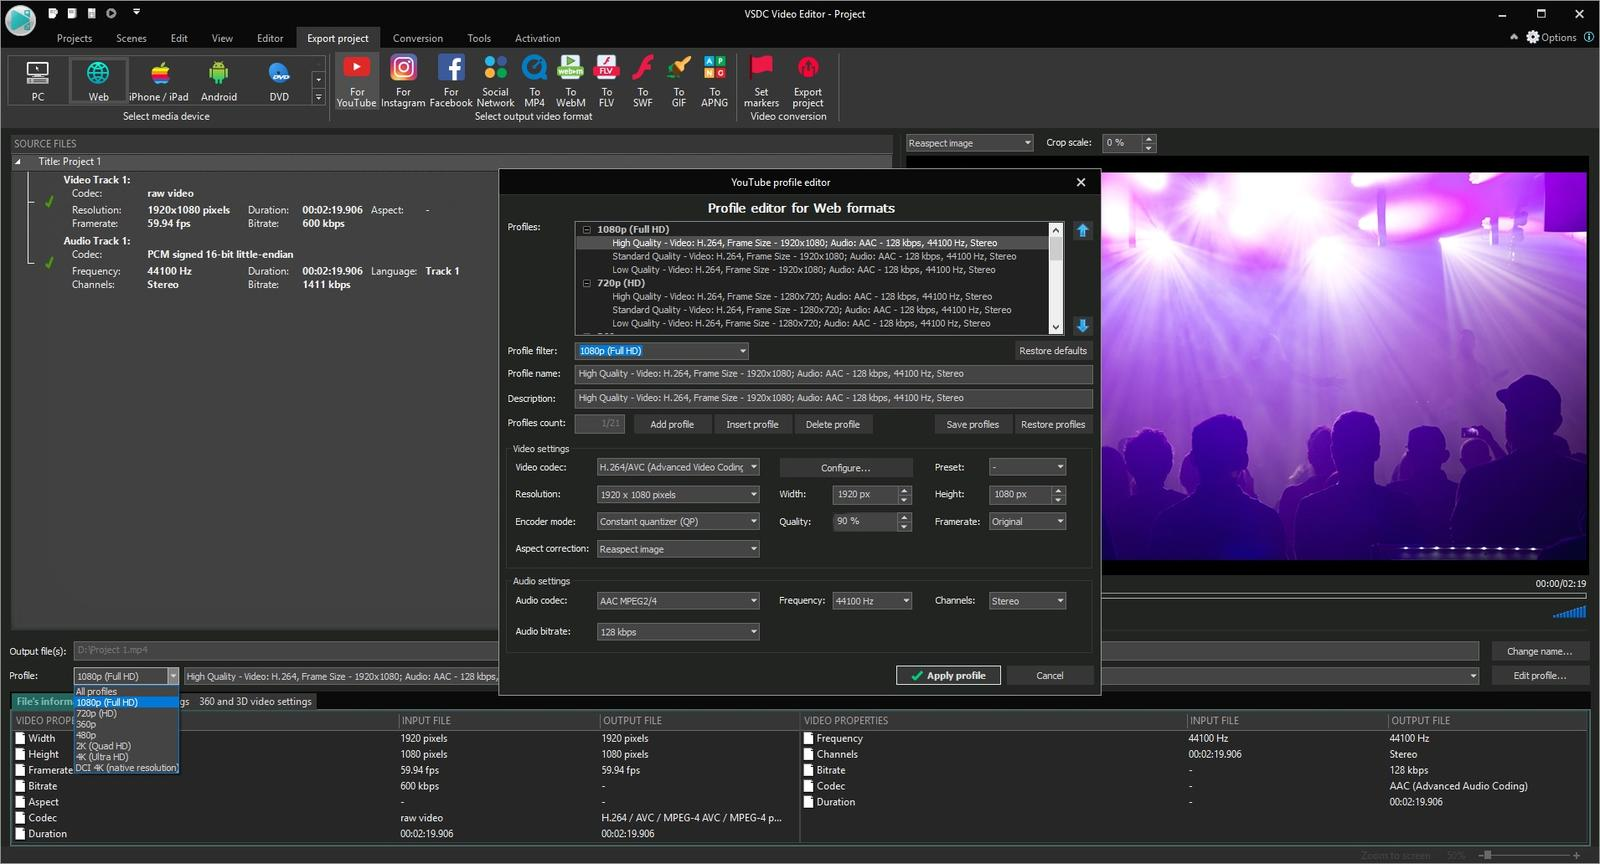 descargar vsdc free video editor en espa?ol